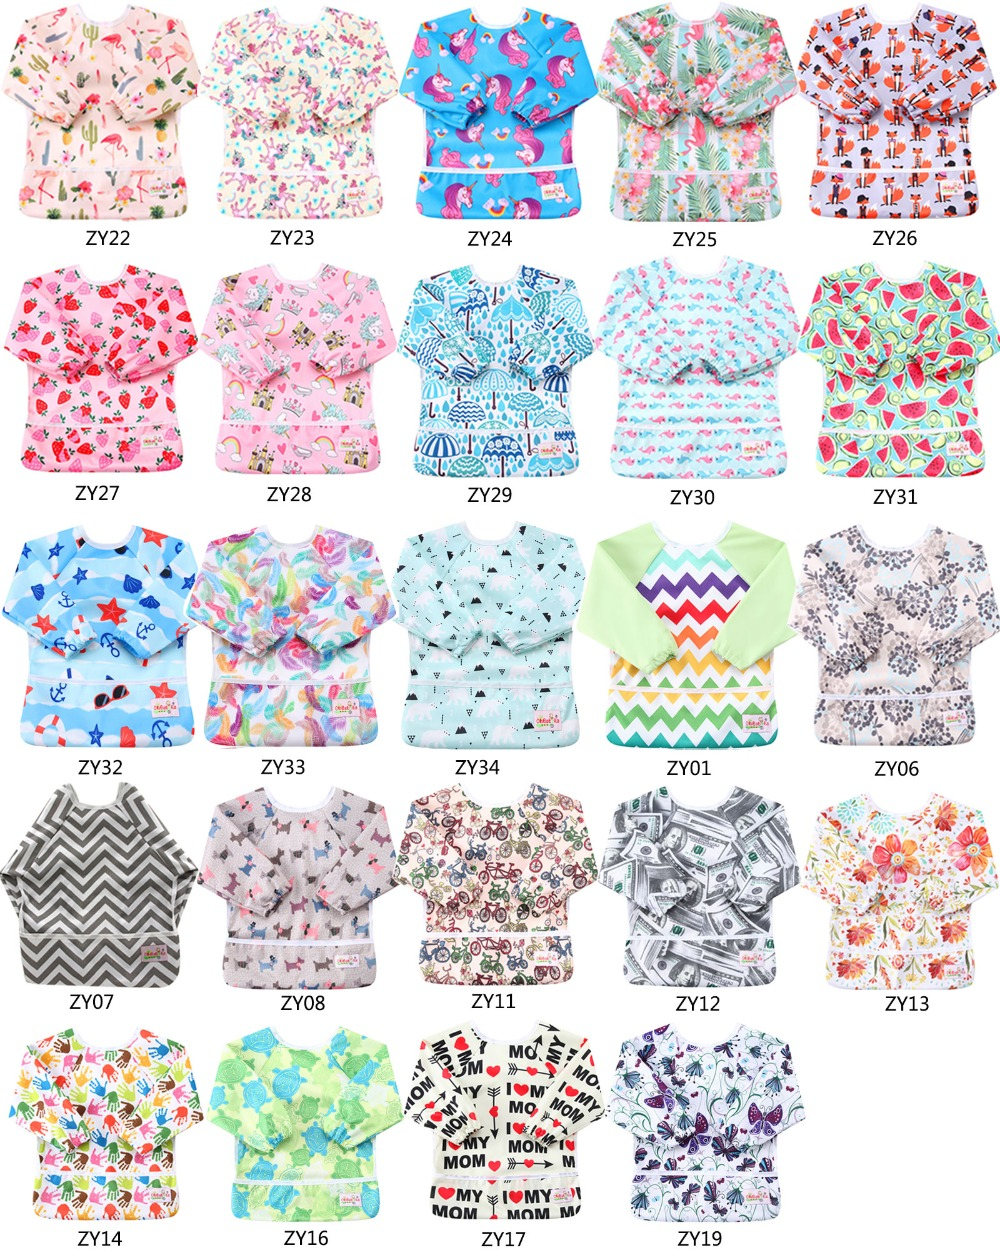 100 Pack Unicorn Reusable Baby Bibs for Boys Waterproof Baby Bibs with Sleeves Unisex Fashion Baby Pocket Bibs Feeding Clothes